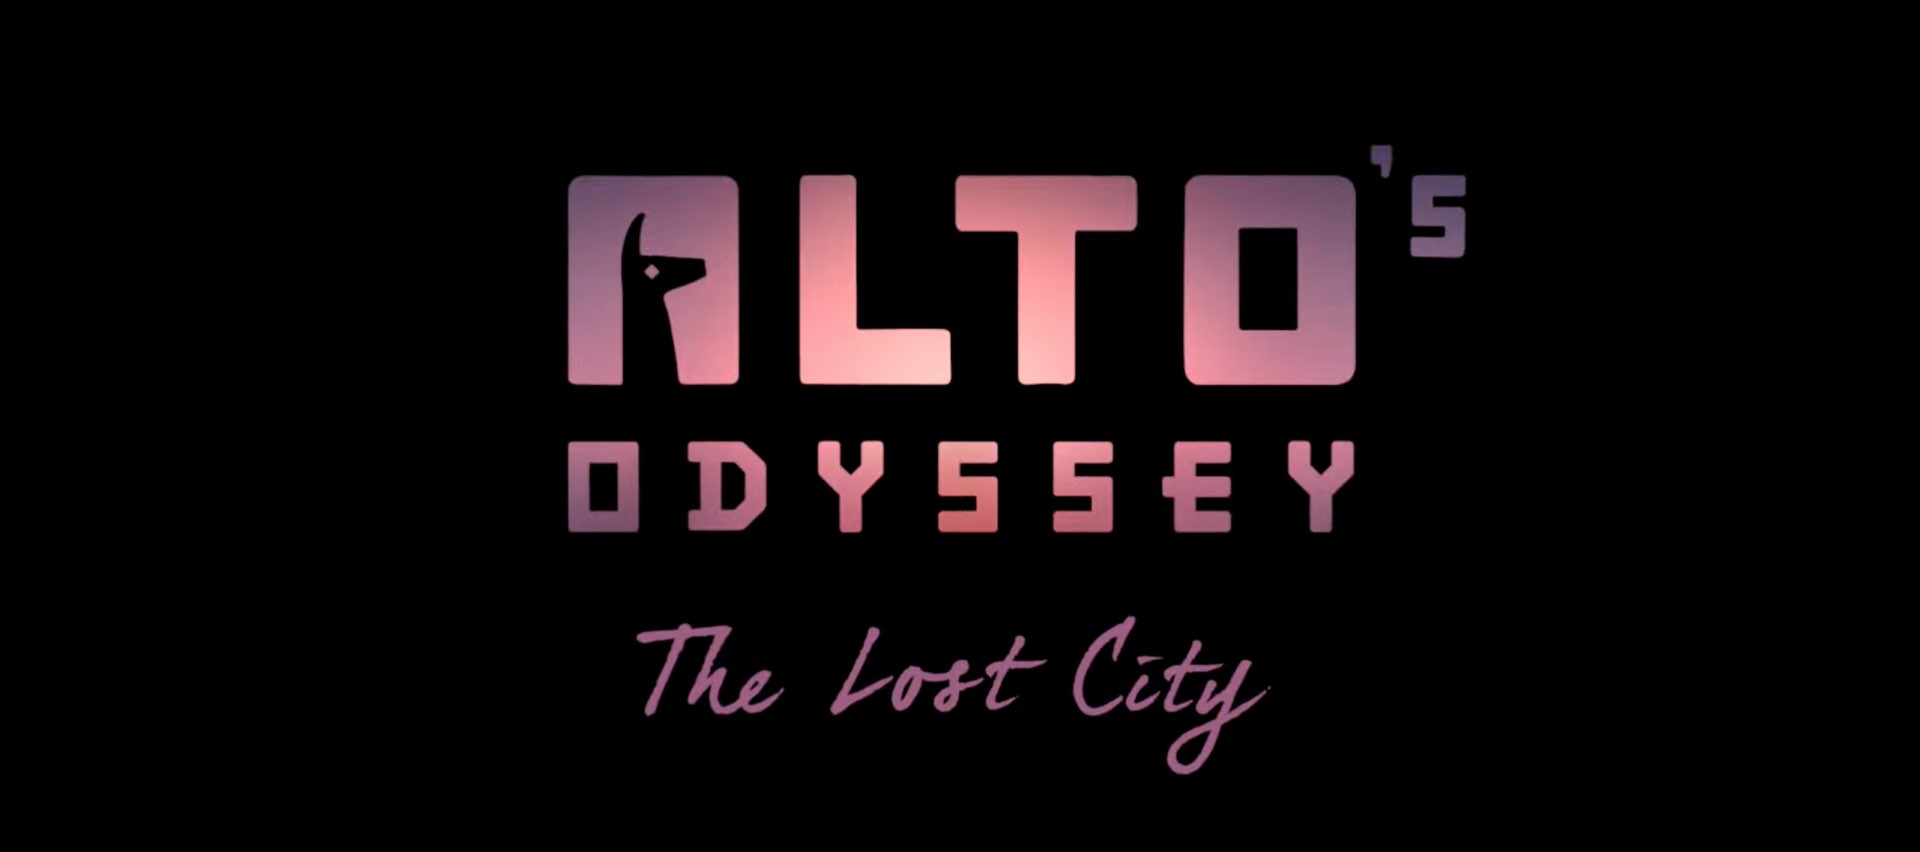 A logo for the game Alto's Odyssey: The Lost City set against a black background